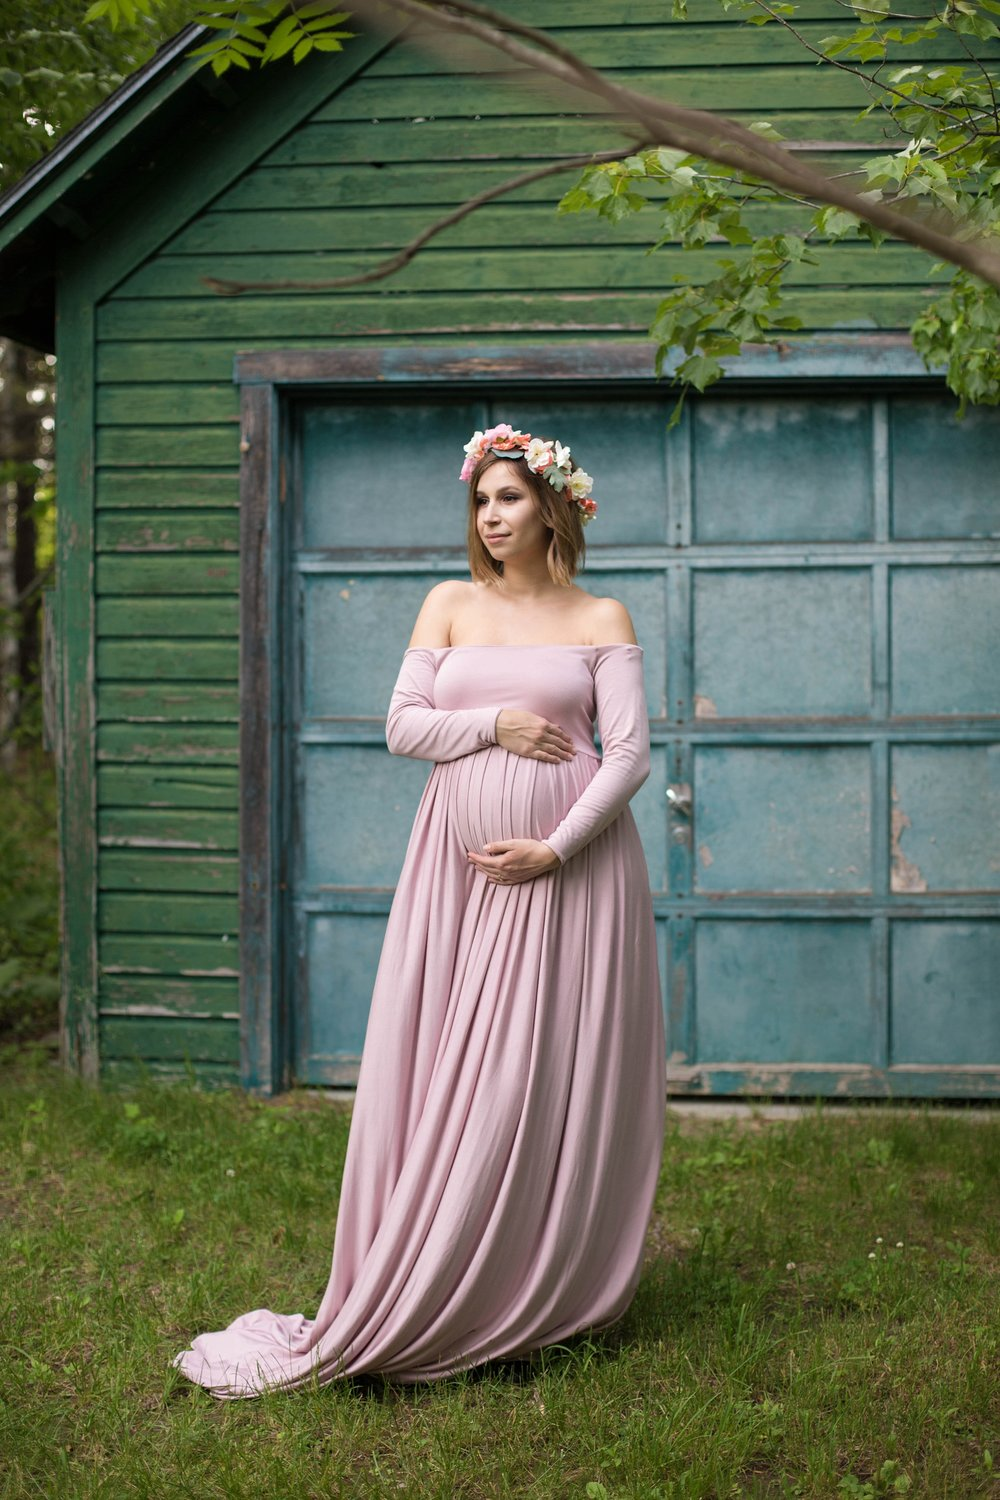 Orono Maine Gardens Maternity Pictures